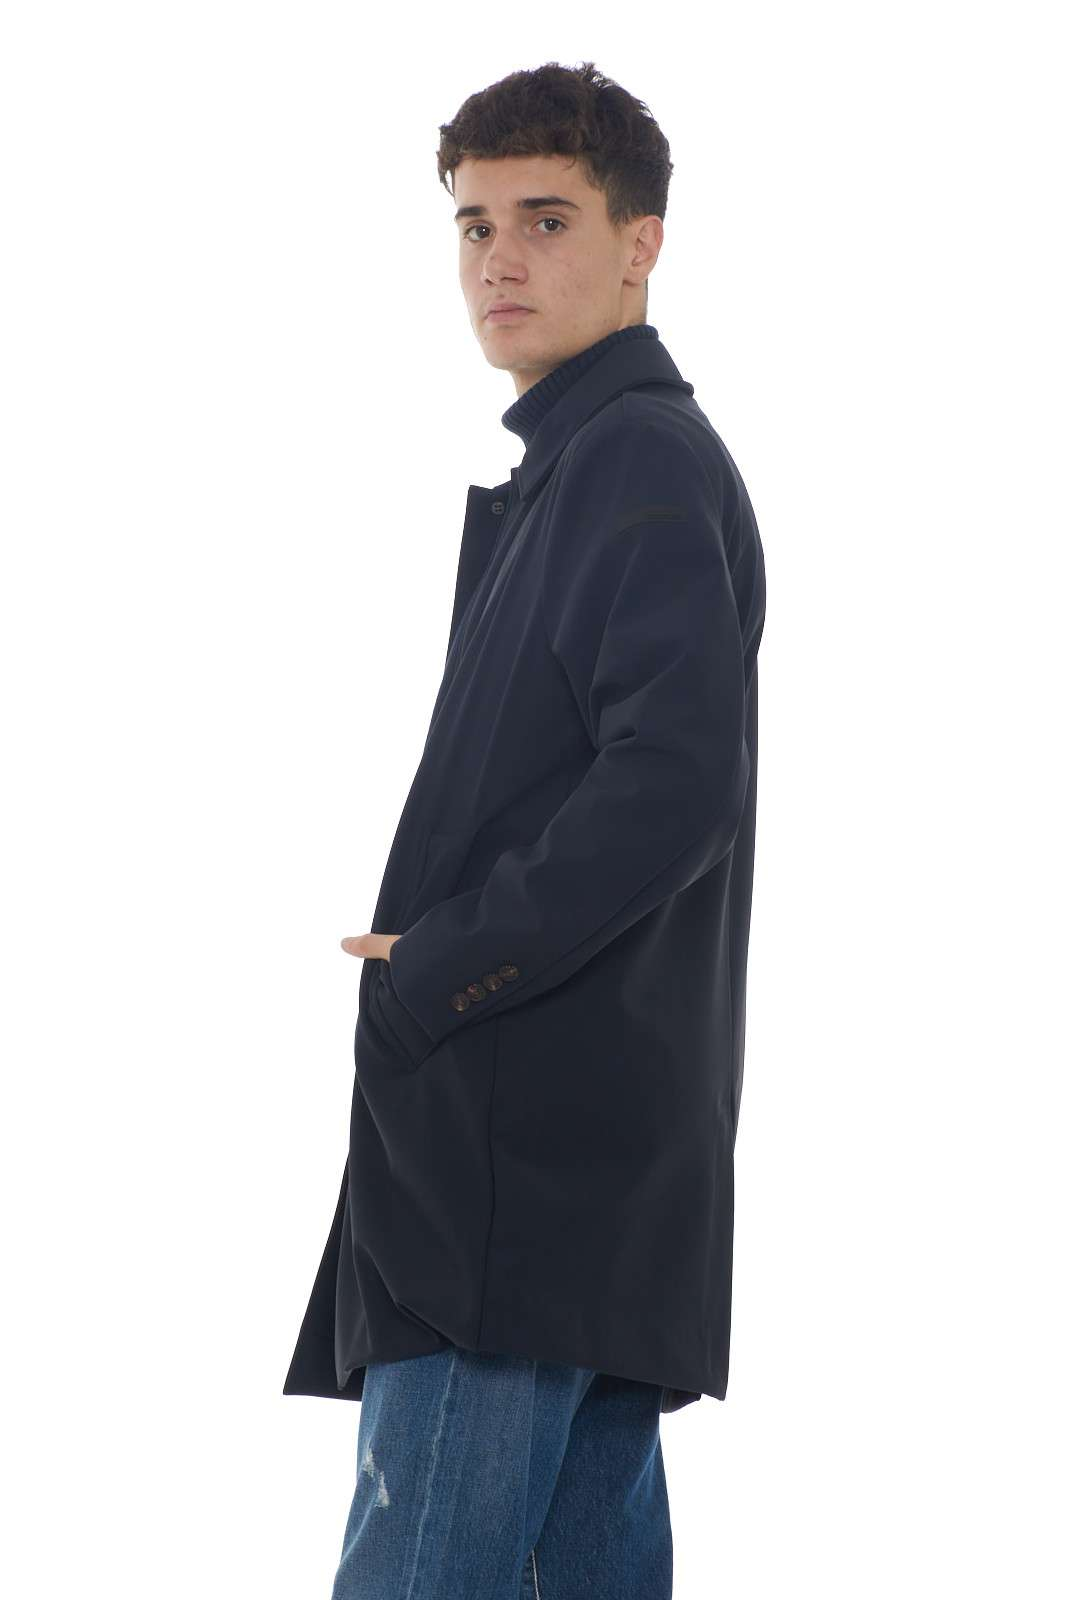 https://www.parmax.com/media/catalog/product/a/i/AI-outlet_parmax-trench-uomo-RRD-W19035-B.jpg